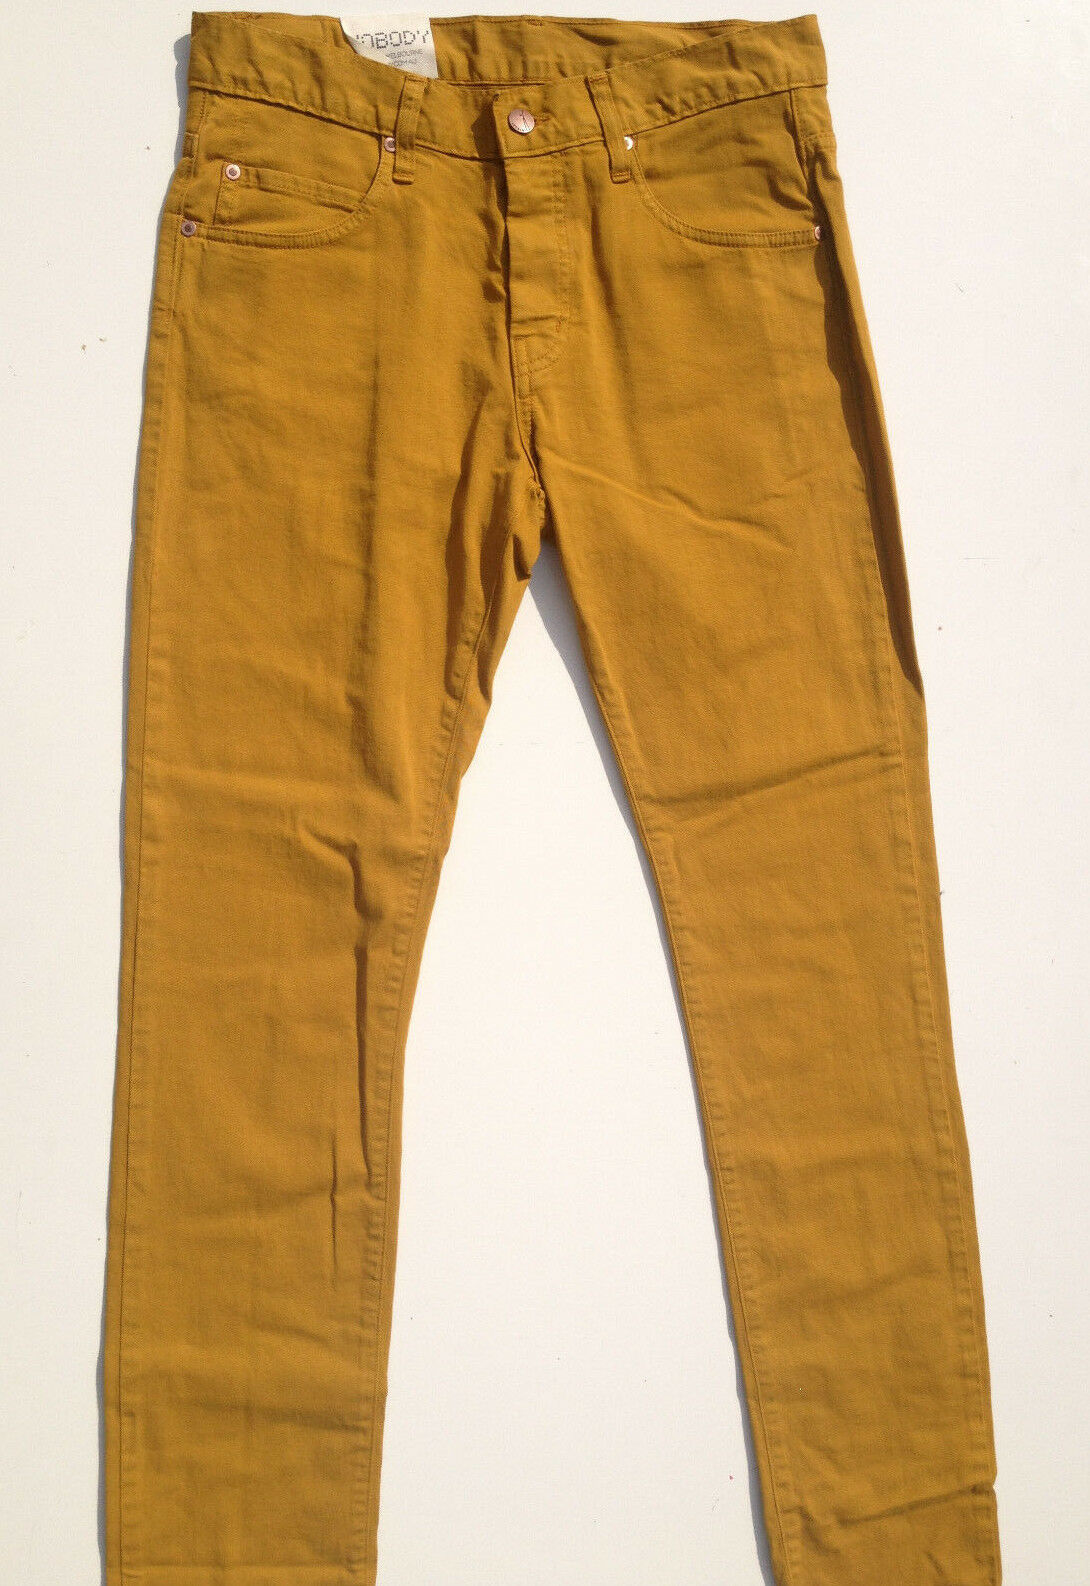 Nobody Jeans 'PIPE MID RISE SLIM FIT' Size 28 L33 AU10 Iron NEW RRP  Womens